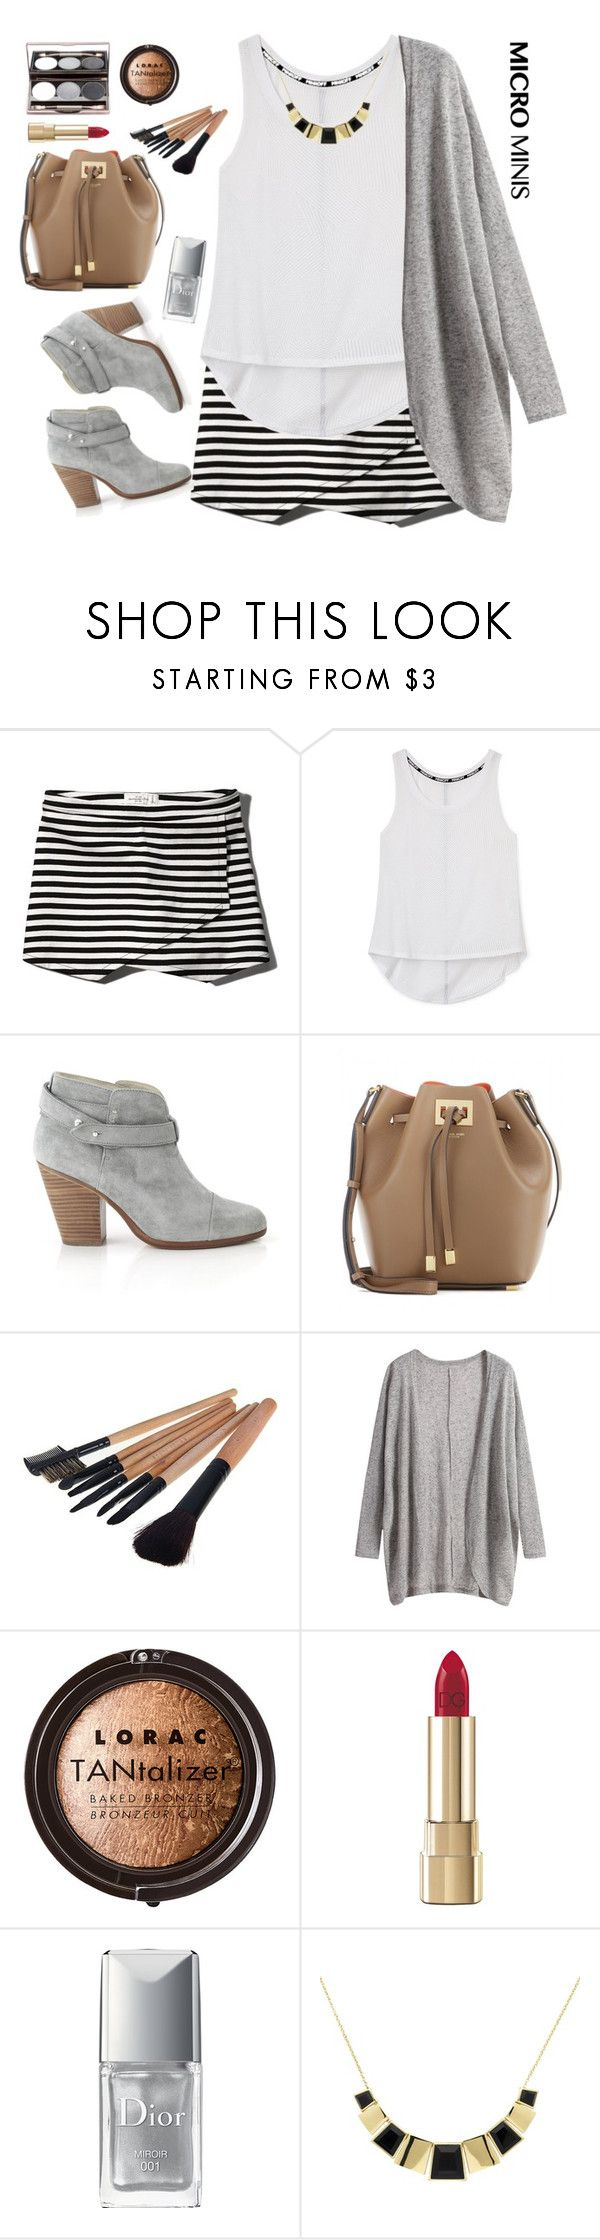 """""""New Trend:Micro Minis"""" by grozdana-v ❤ liked on Polyvore featuring Abercrombie & Fitch, Rebecca Minkoff, Nude by Nature, rag & bone, Michael Kors, LORAC, Dolce&Gabbana, Christian Dior, Monet and microminis"""